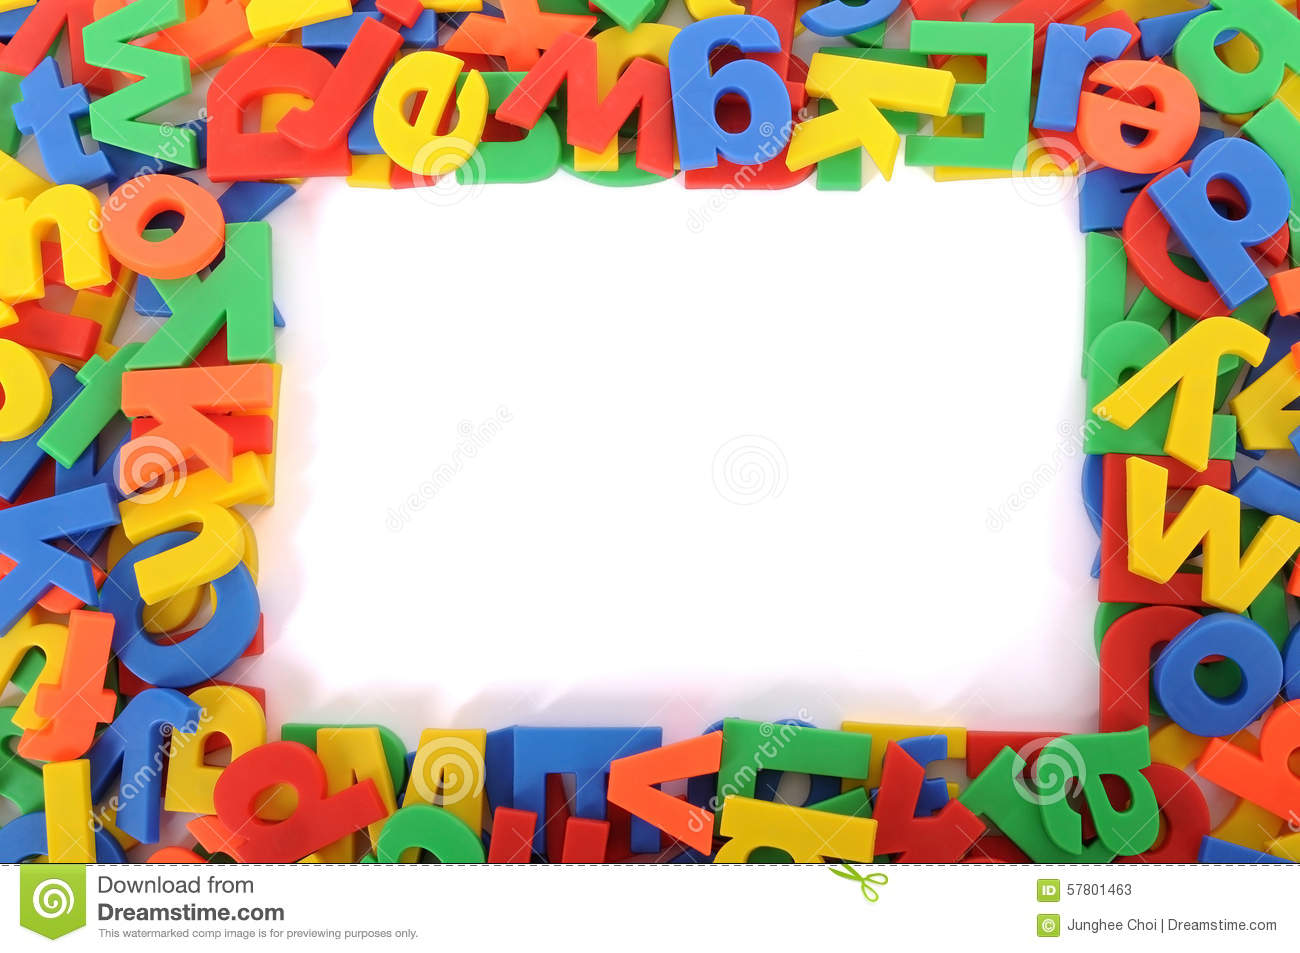 Clipart abc background. Plastic school toy letters